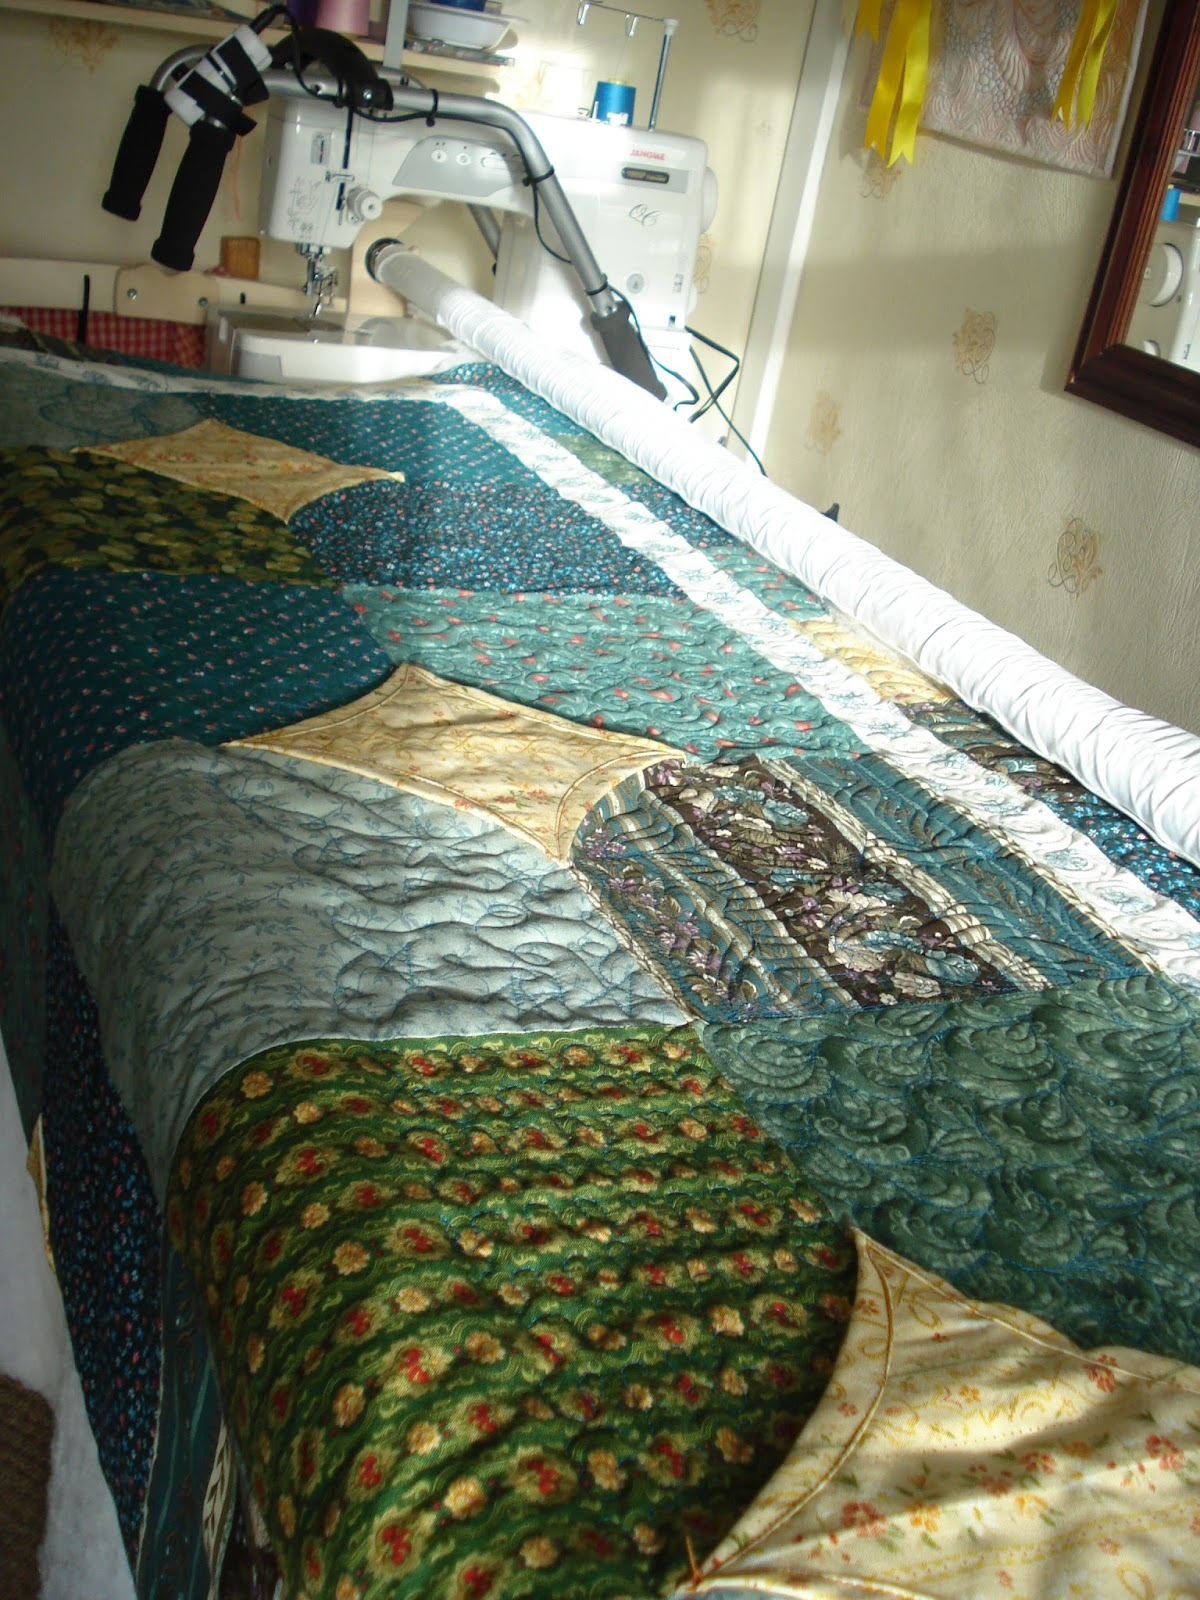 The Nifty Stitcher: A Practice Quilt - on the Frame